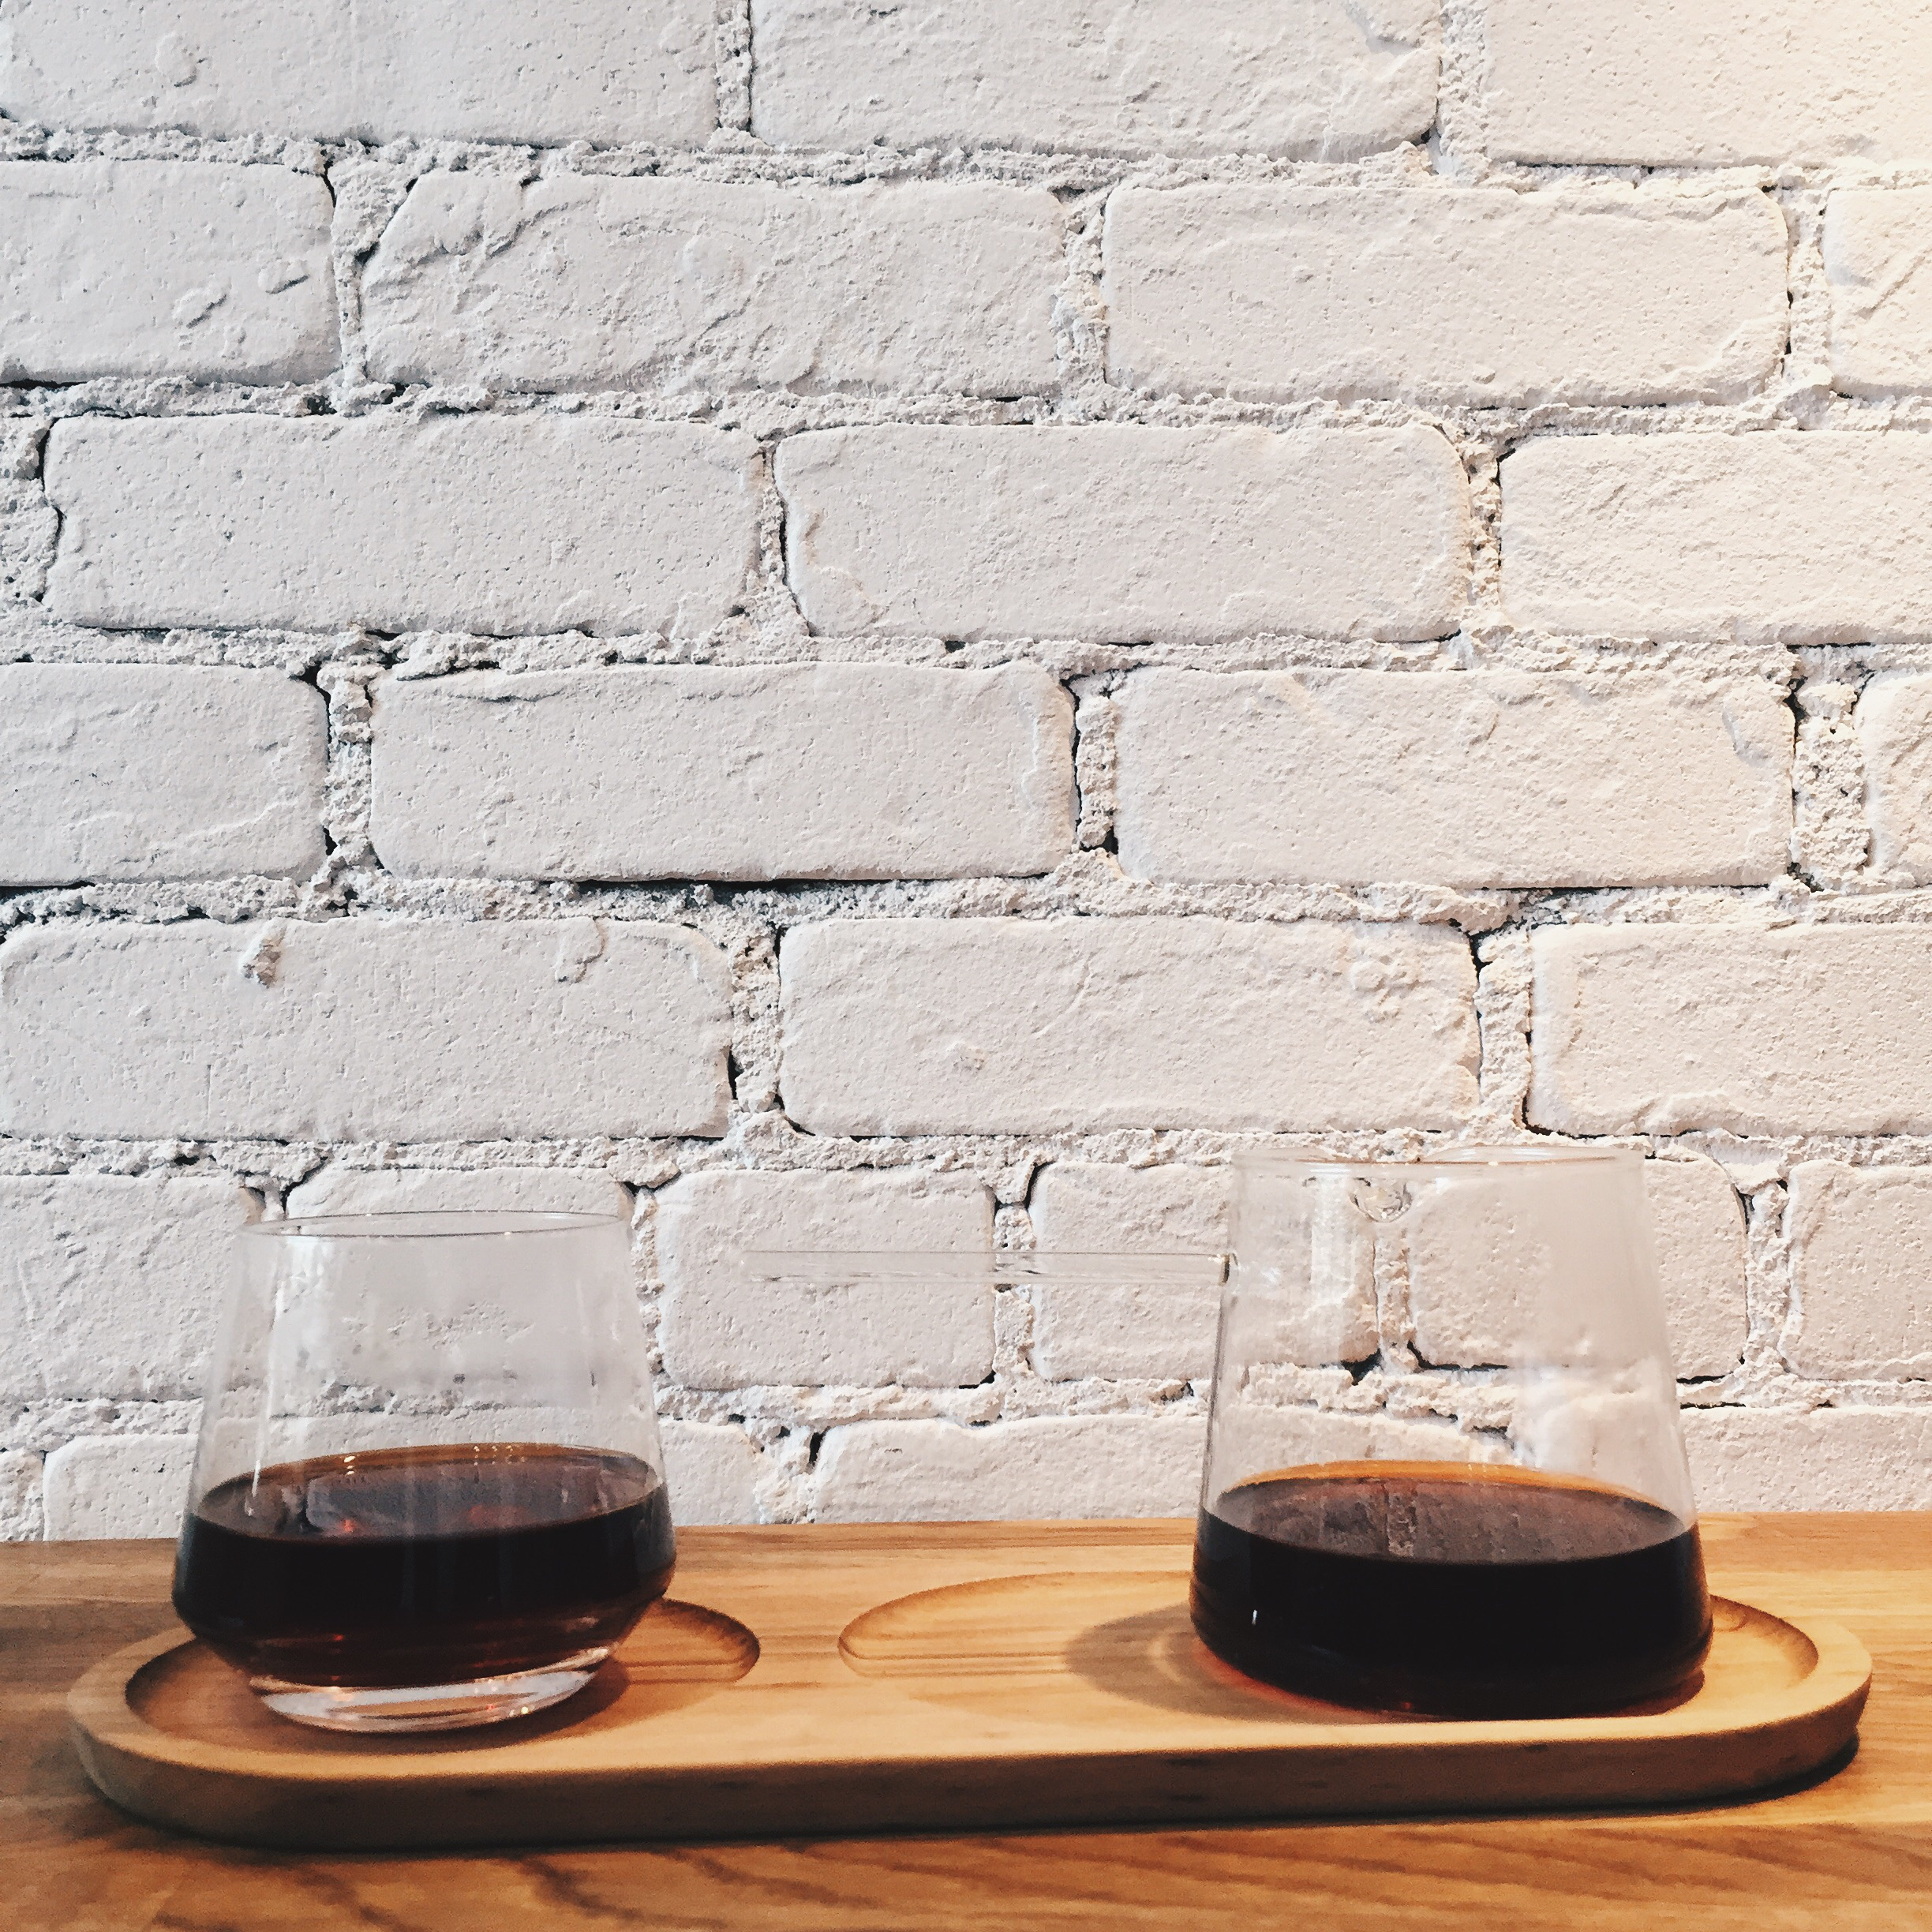 Early Bird Pourover. Such a unique way to present coffee!